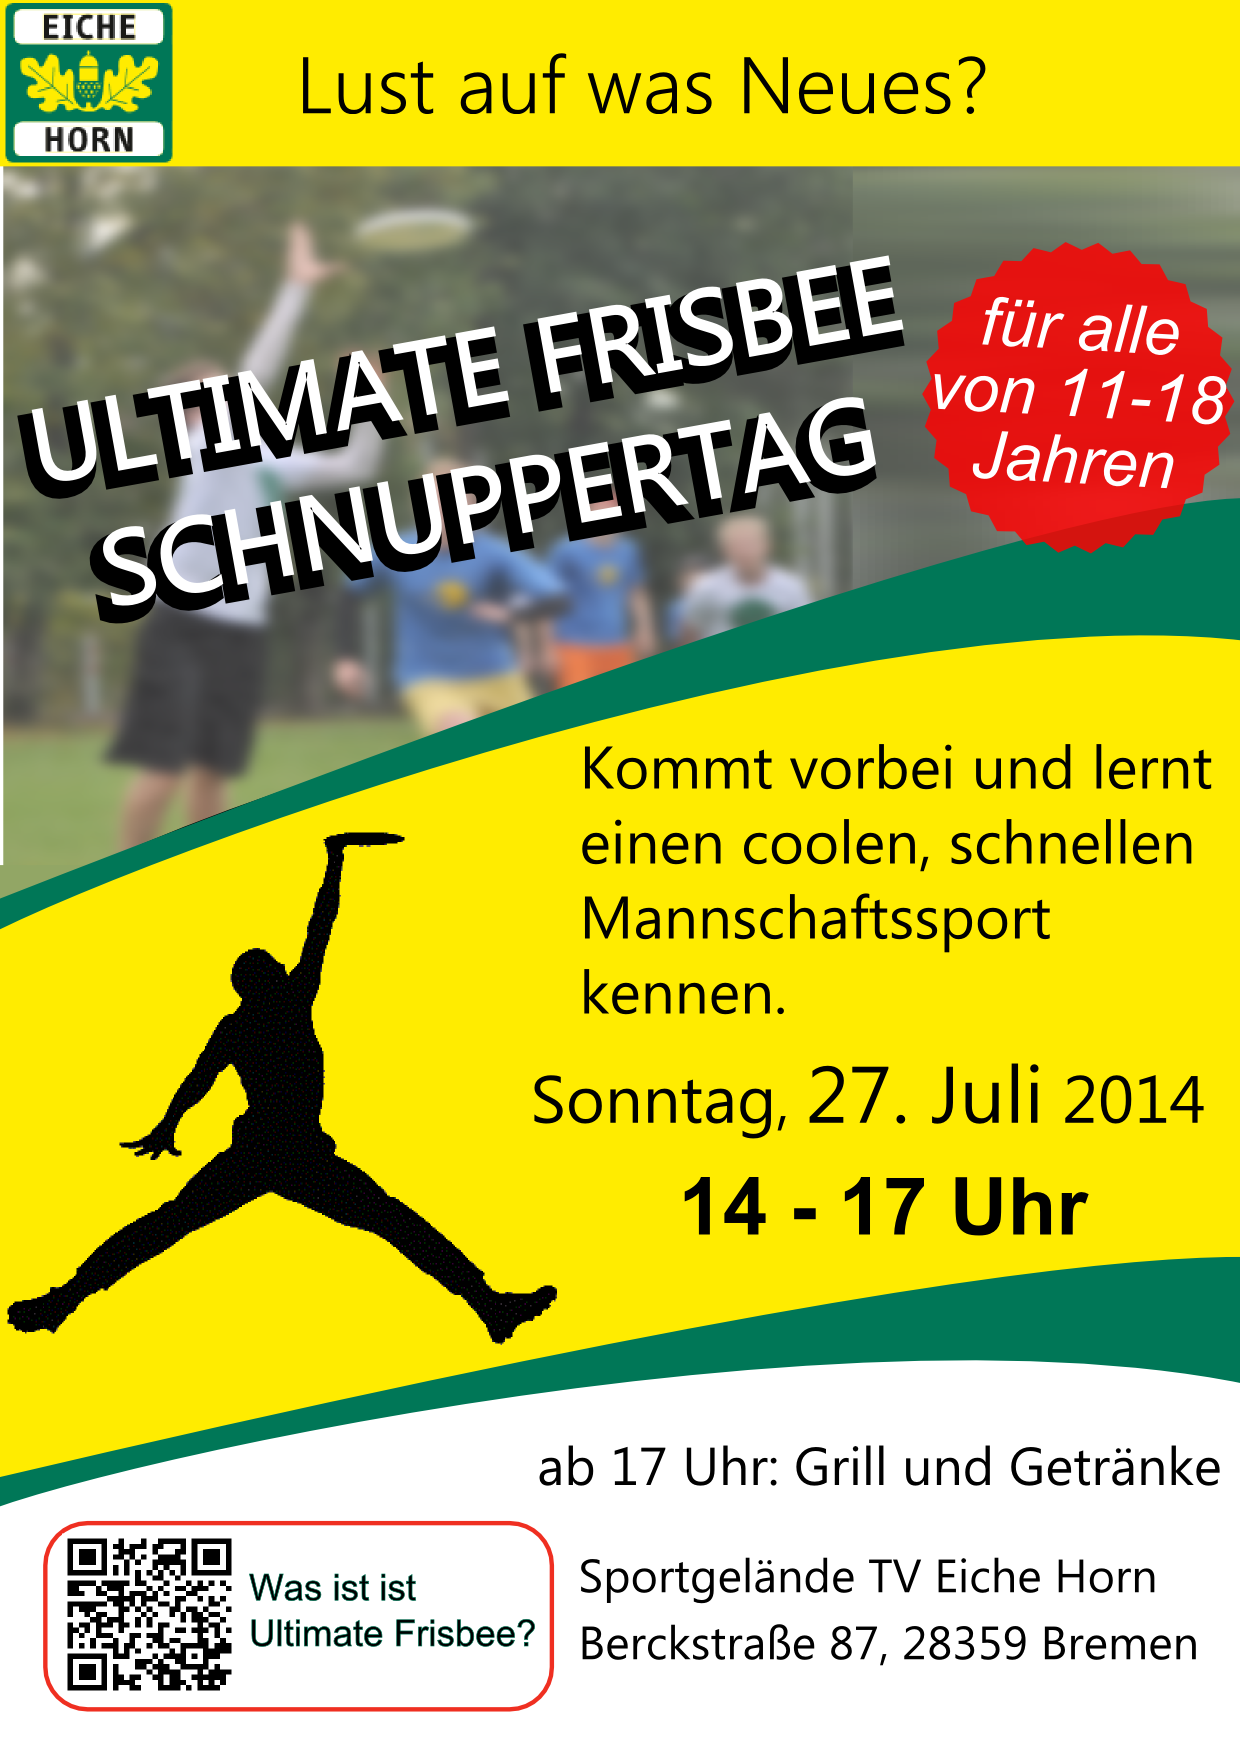 plakat_frisbee_final_badge_schatten.png